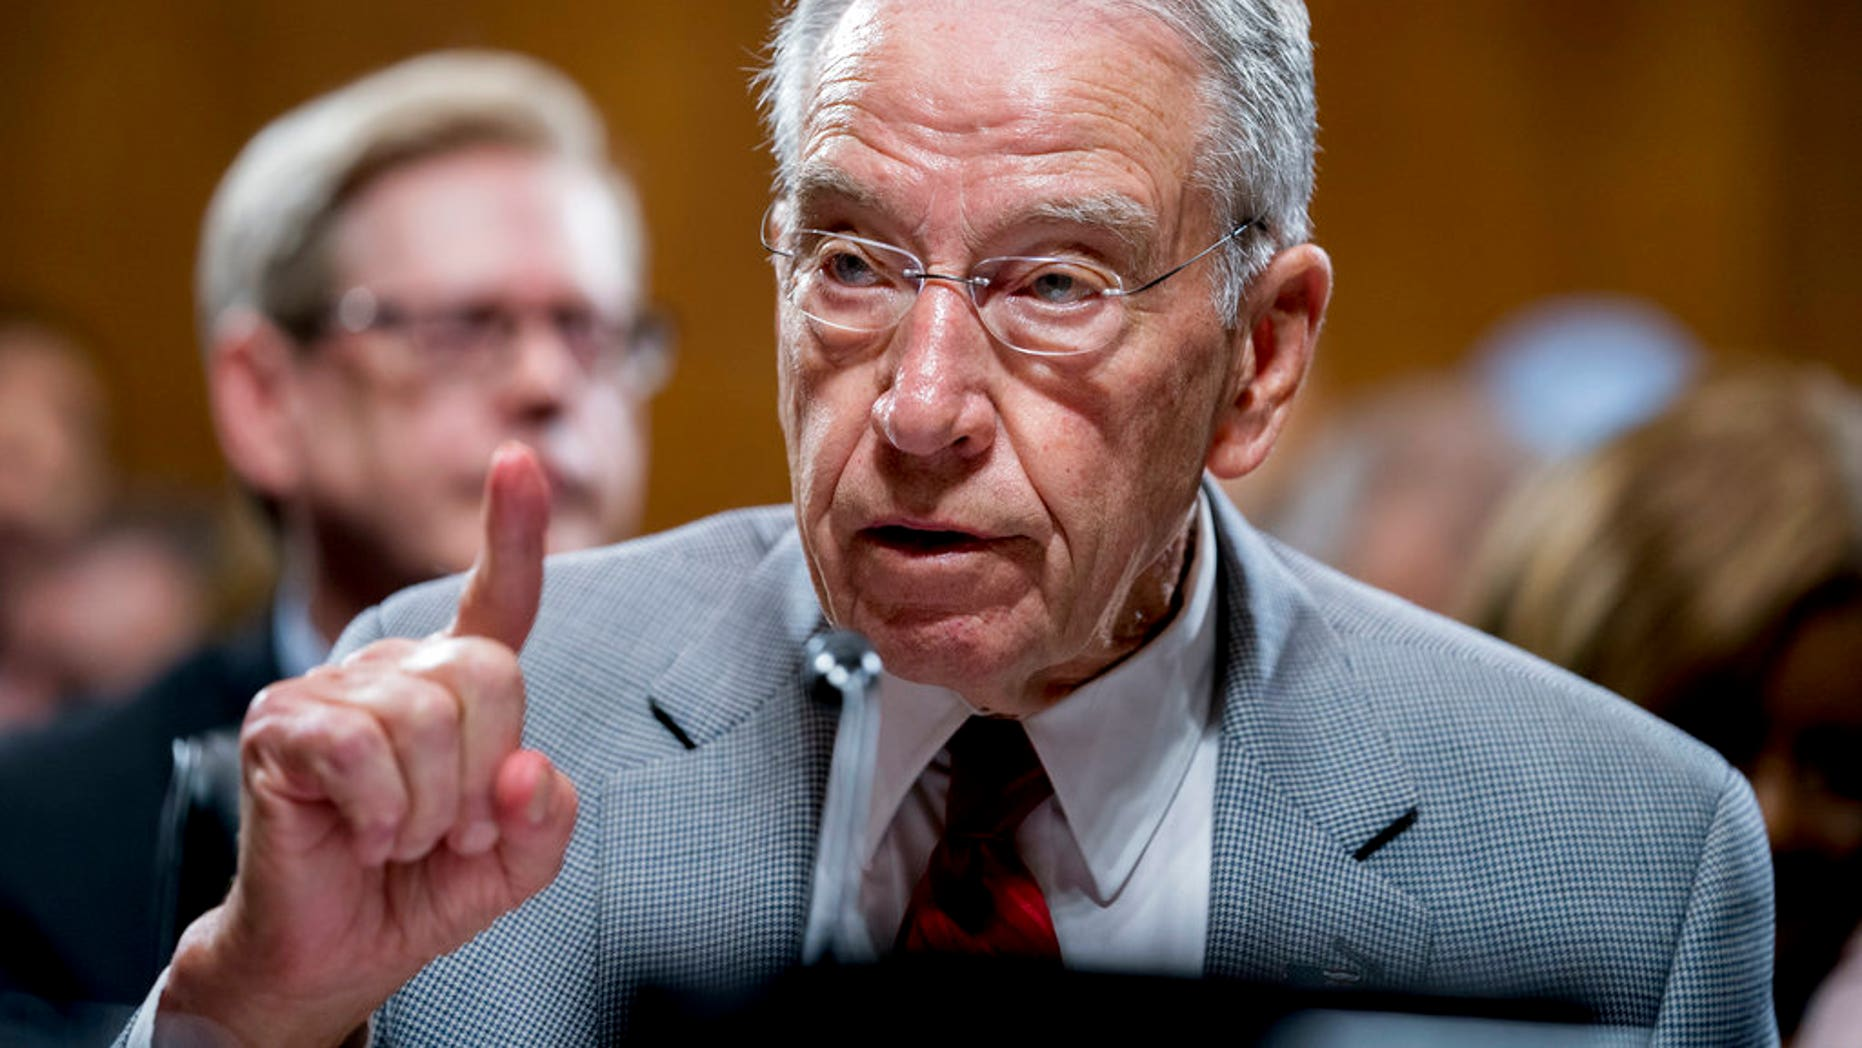 "FILE - In this Thursday, Sept. 13, 2018 file photo, Senate Judiciary Committee Chairman Chuck Grassley, R-Iowa, speaks during a Senate Judiciary Committee markup meeting on Capitol Hill, in Washington. Senate Republicans are bringing in Arizona prosecutor Rachel Mitchell to handle questioning about Christine Blasey Ford's allegations of sexual assault against Kavanaugh at the Senate Judiciary Committee hearing Thursday, Sept. 27, 2018. A news release from Grassley's office describes Mitchell as ""a career prosecutor with decades of experience prosecuting sex crimes."" (AP Photo/Andrew Harnik, File)"